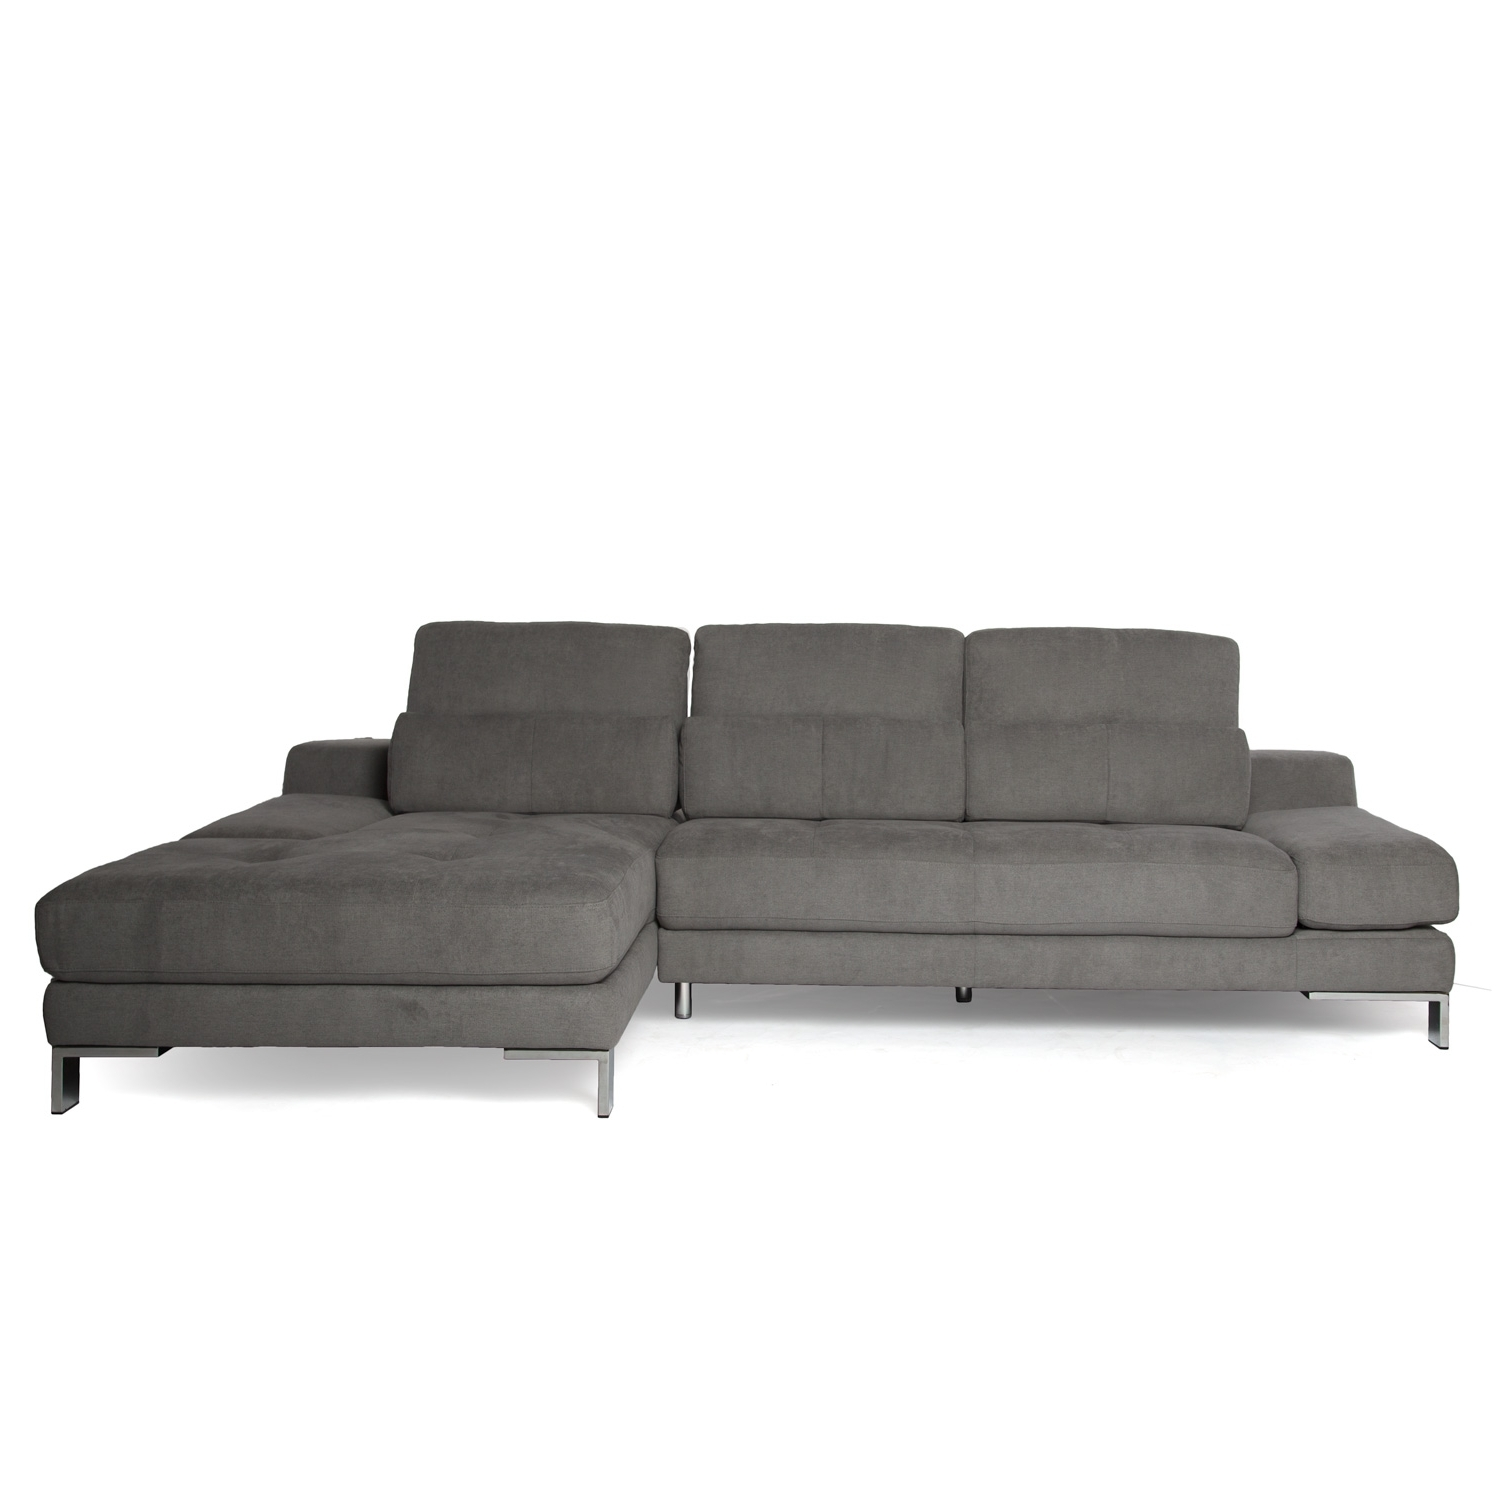 Latest Sectional Sofas At Bc Canada In Fun And Functional Fabric Sectional Sofa (View 9 of 20)